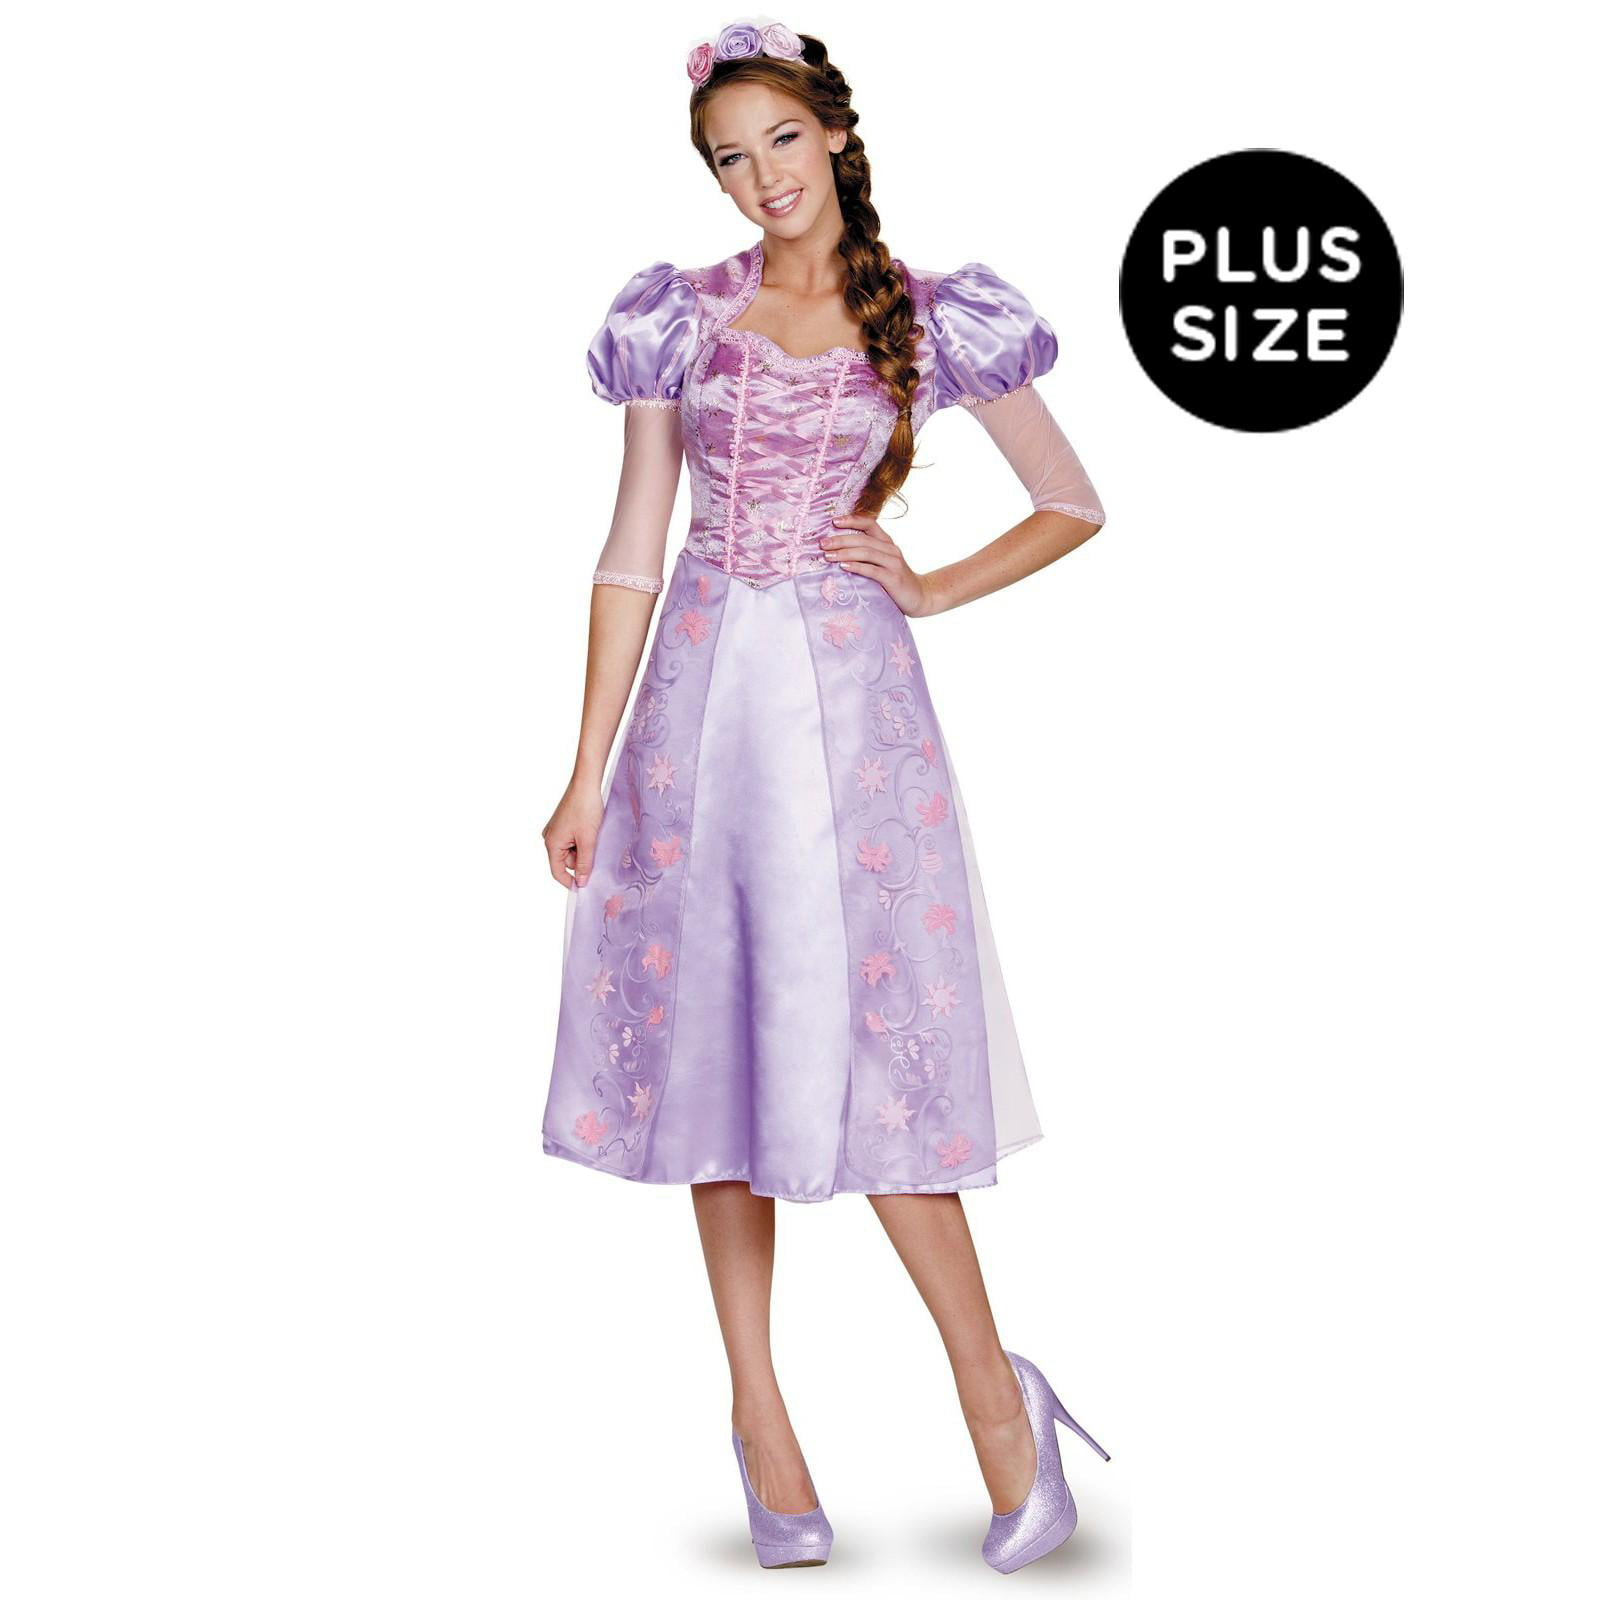 Disney Princess Deluxe Plus Size Rapunzel Costume For Women - XL (18-20) - Walmart.com  sc 1 st  Walmart & Disney Princess Deluxe Plus Size Rapunzel Costume For Women - XL (18 ...